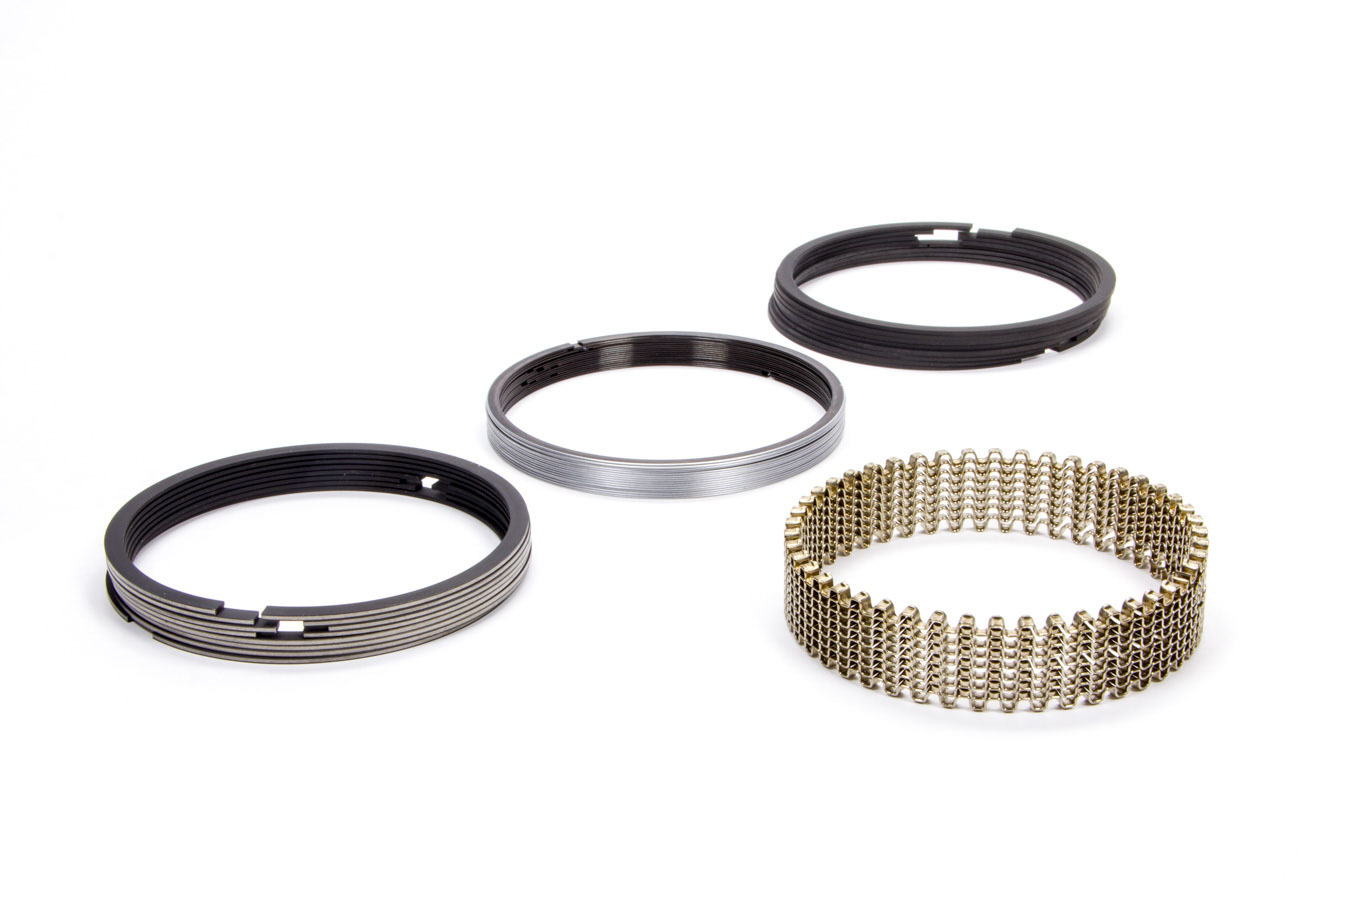 Hastings CM5532040 Piston Rings, Claimer, 4.040 in Bore, 1/16 x 1/16 x 3/16 in Thick, Standard Tension, Plasma Moly, 8 Cylinder, Kit